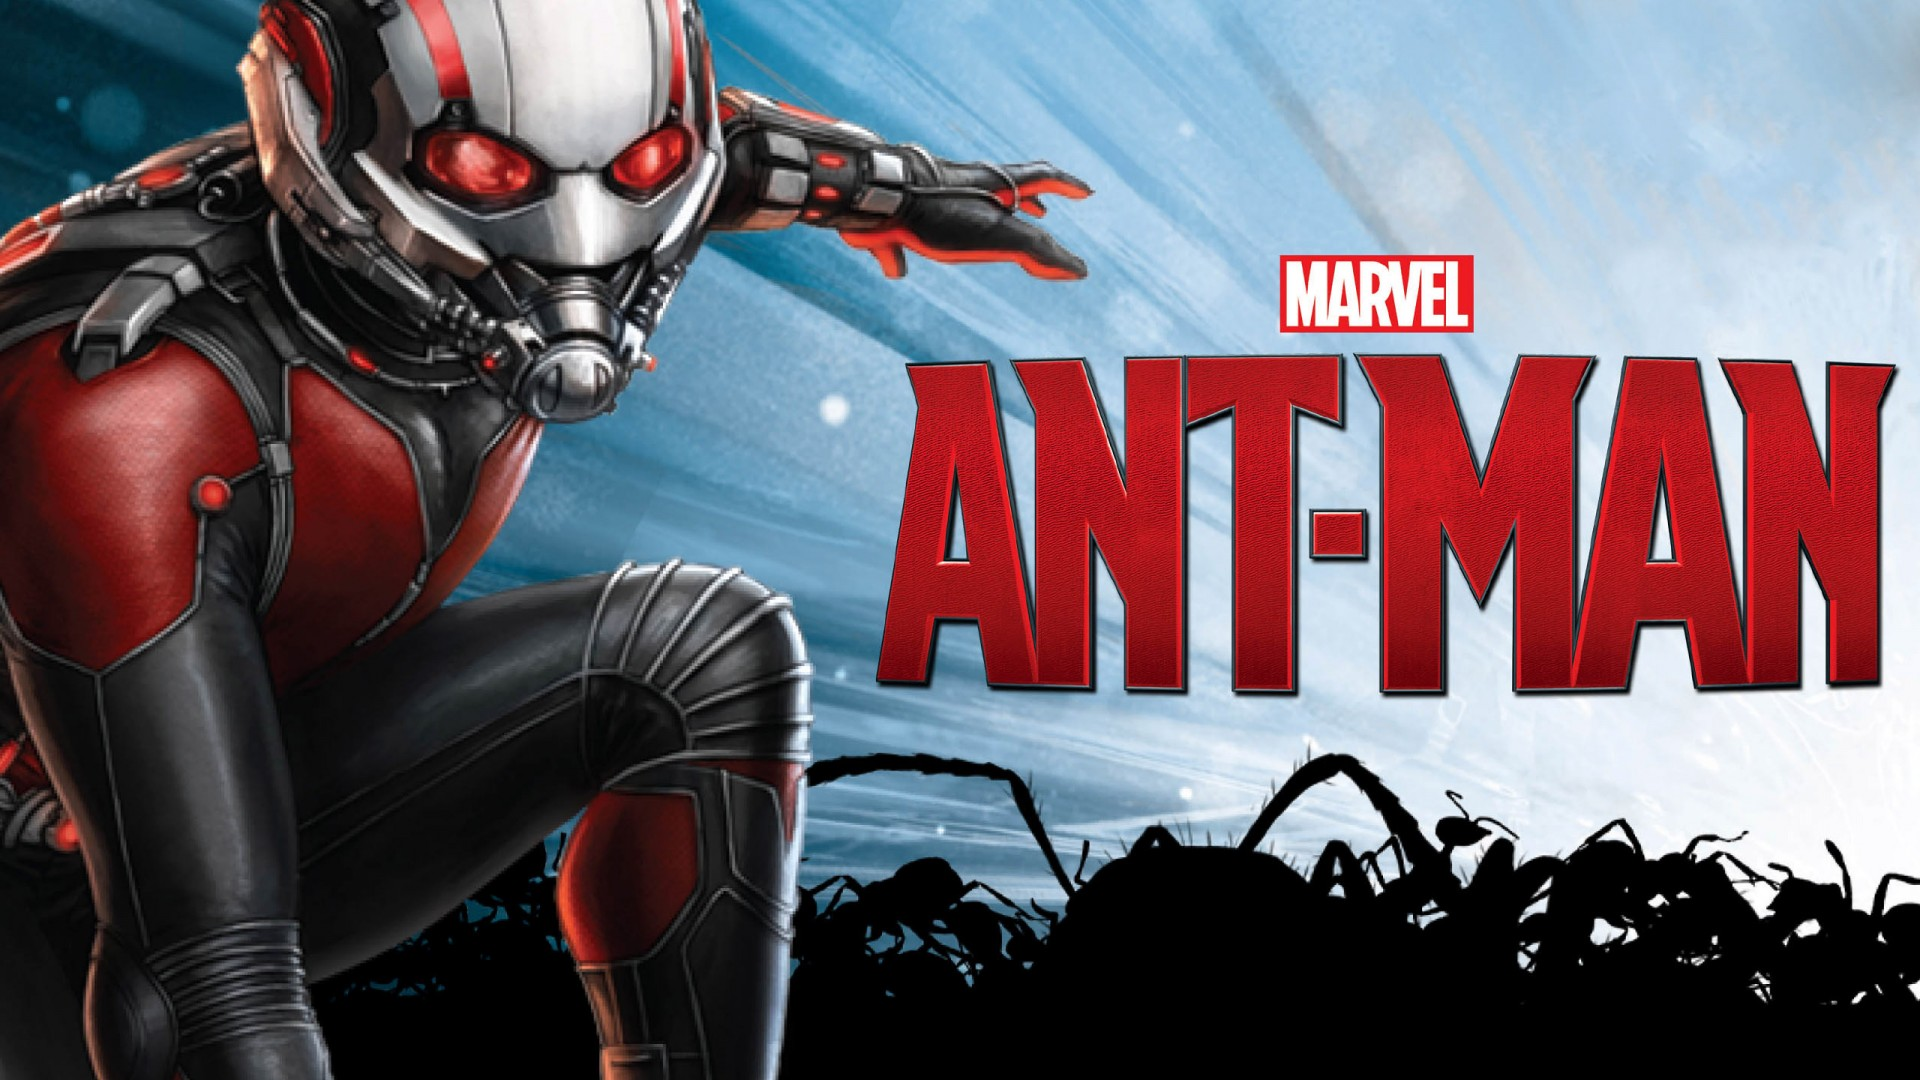 Marvel Ant Man 2015 Movie Poster HD Wallpaper   Stylish HD Wallpapers 1920x1080